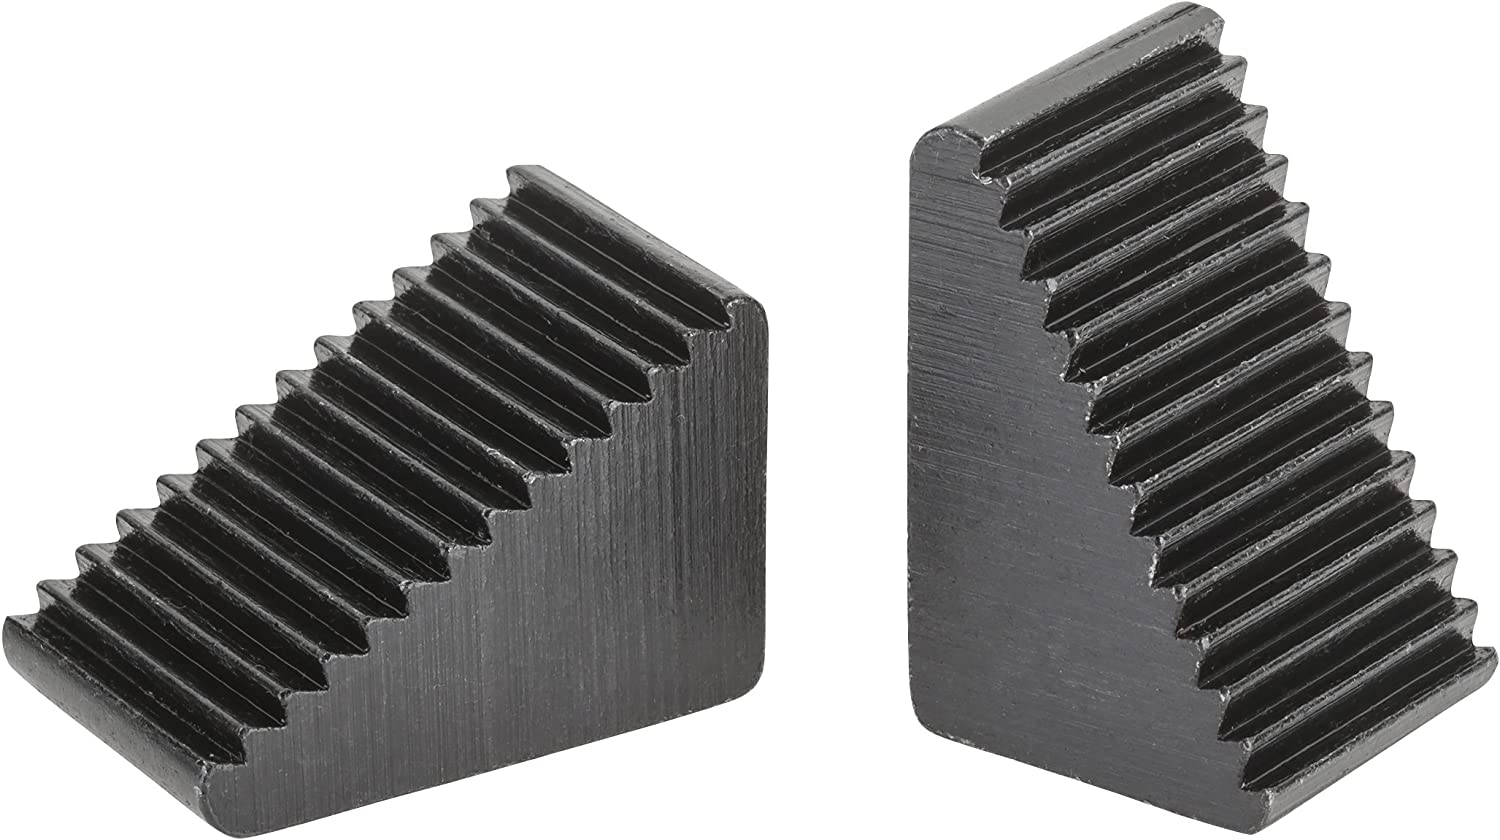 Grizzly G9525 Deluxe Step Blocks Pair 1-1//2-Inch H by 1-1//4-Inch W